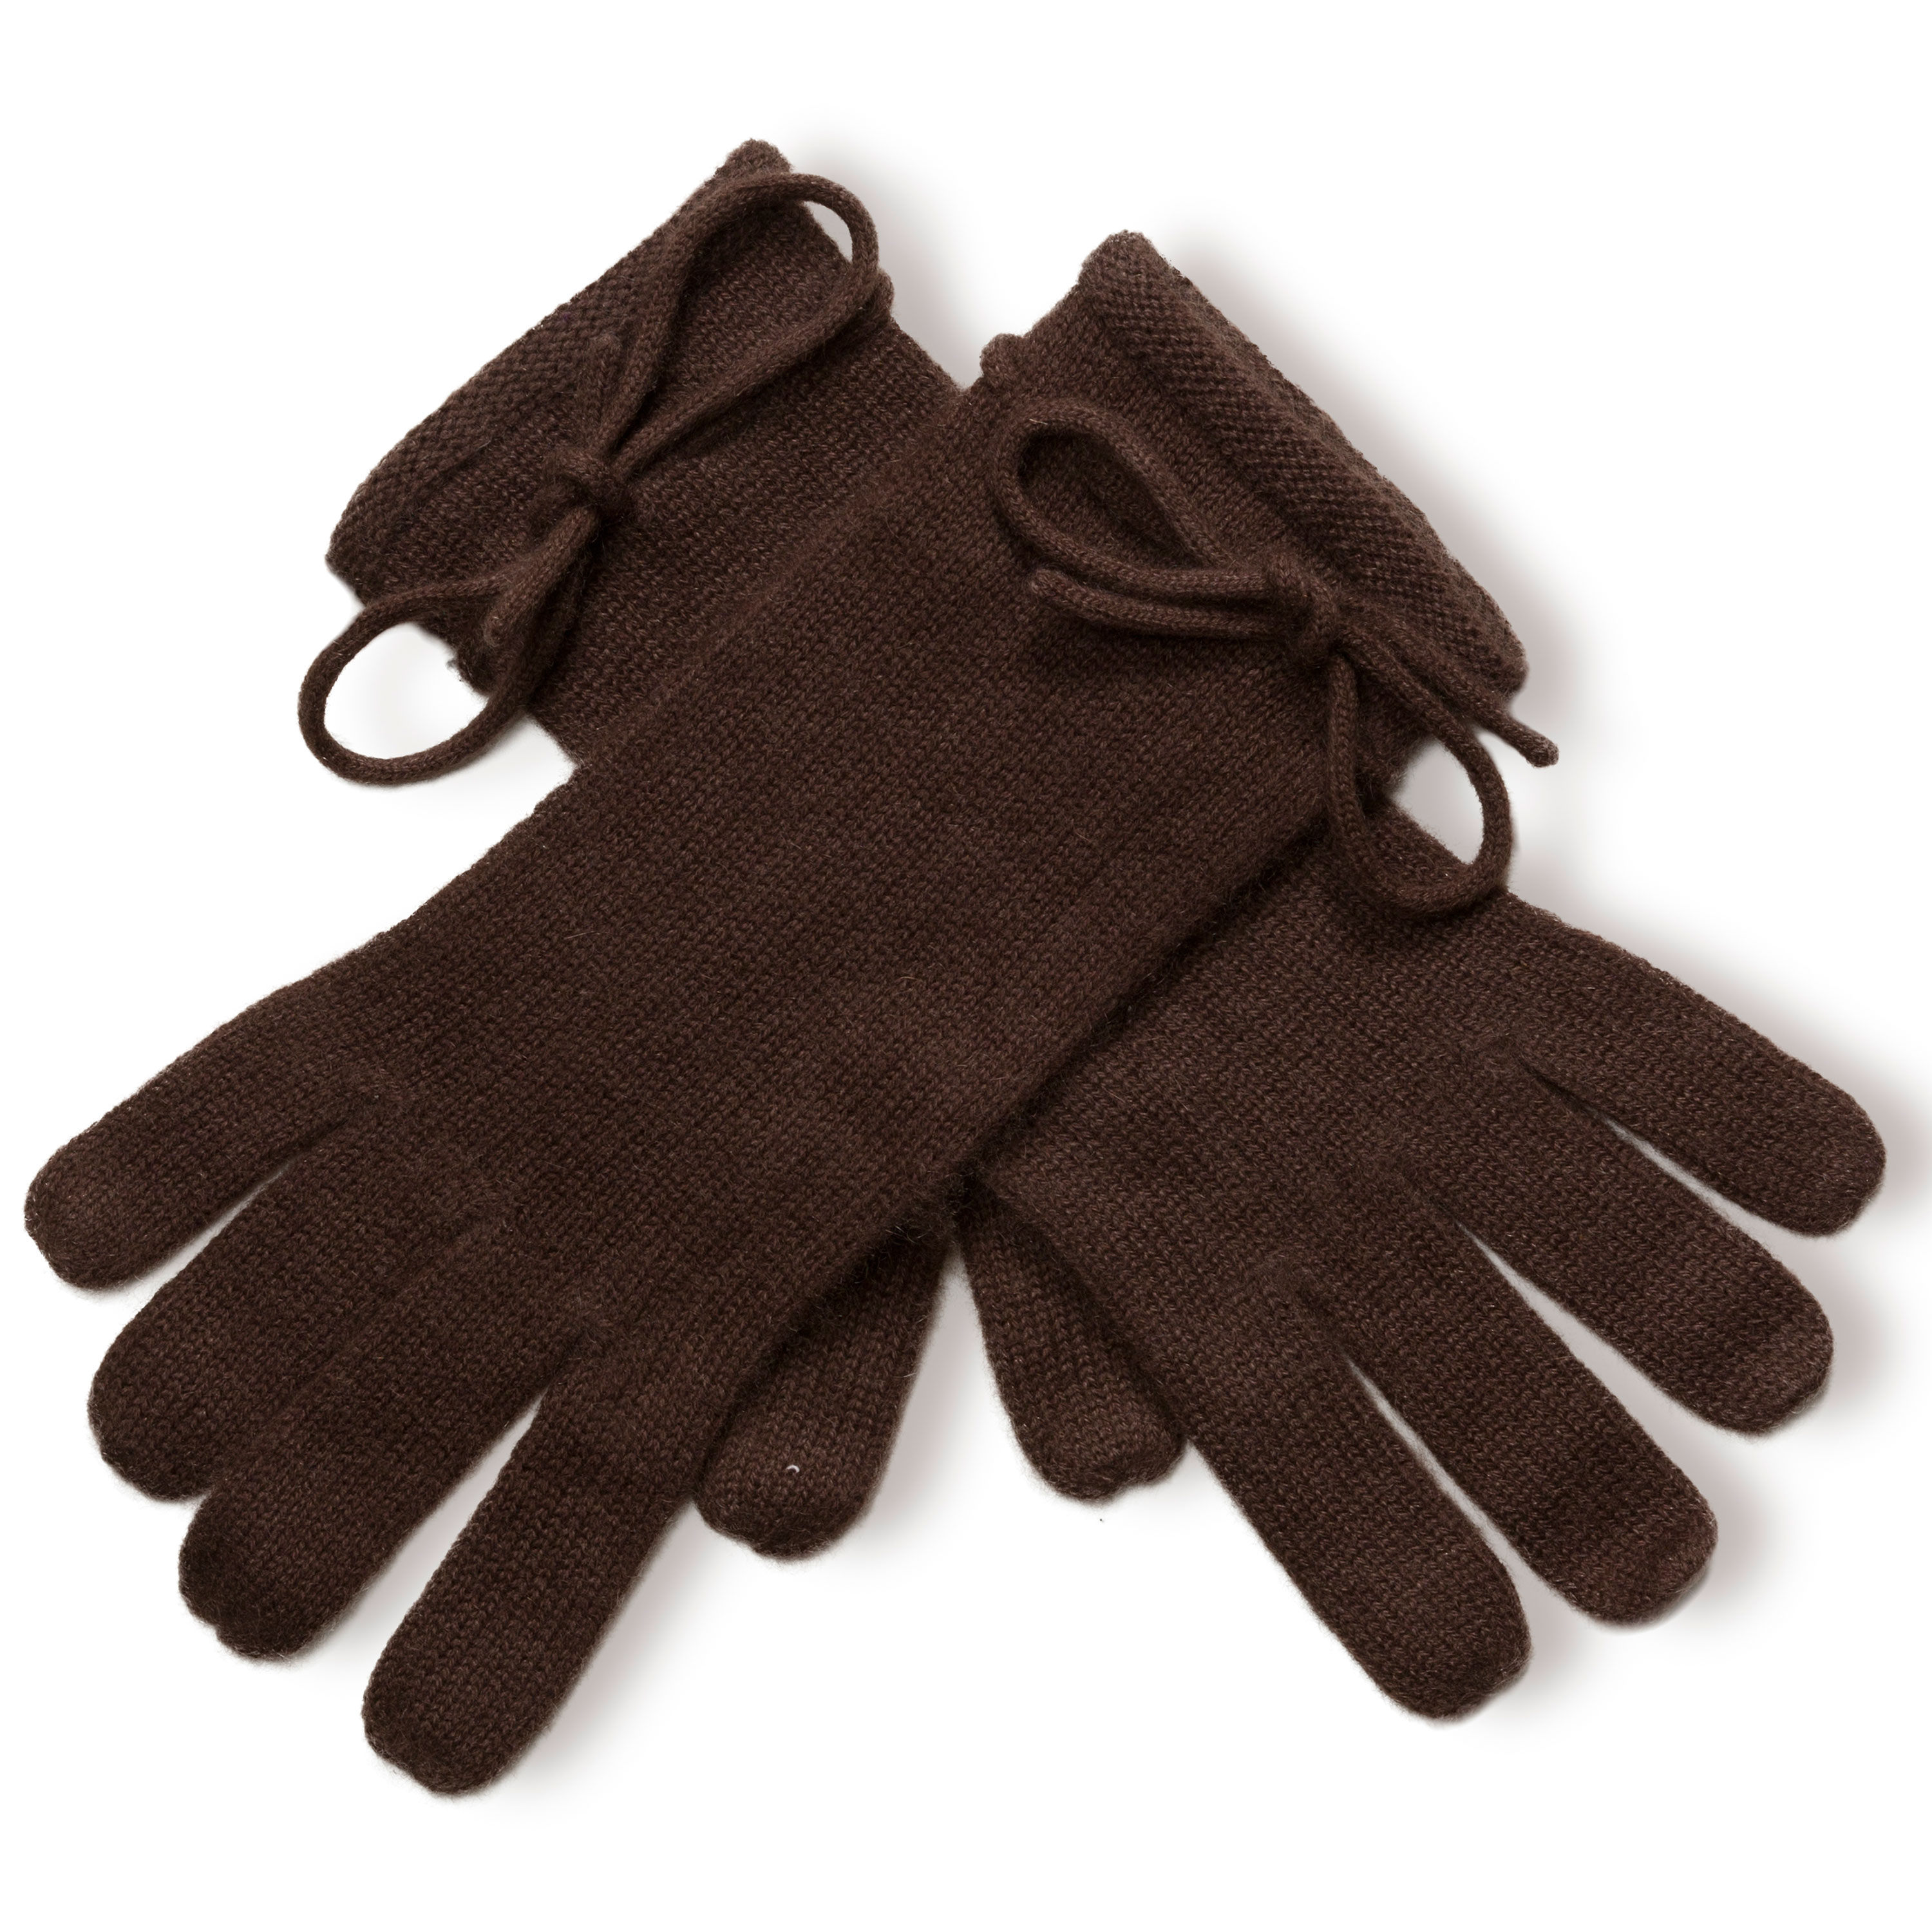 Ladies Cashmere Gloves With Wrist Tie - Coffee Bean